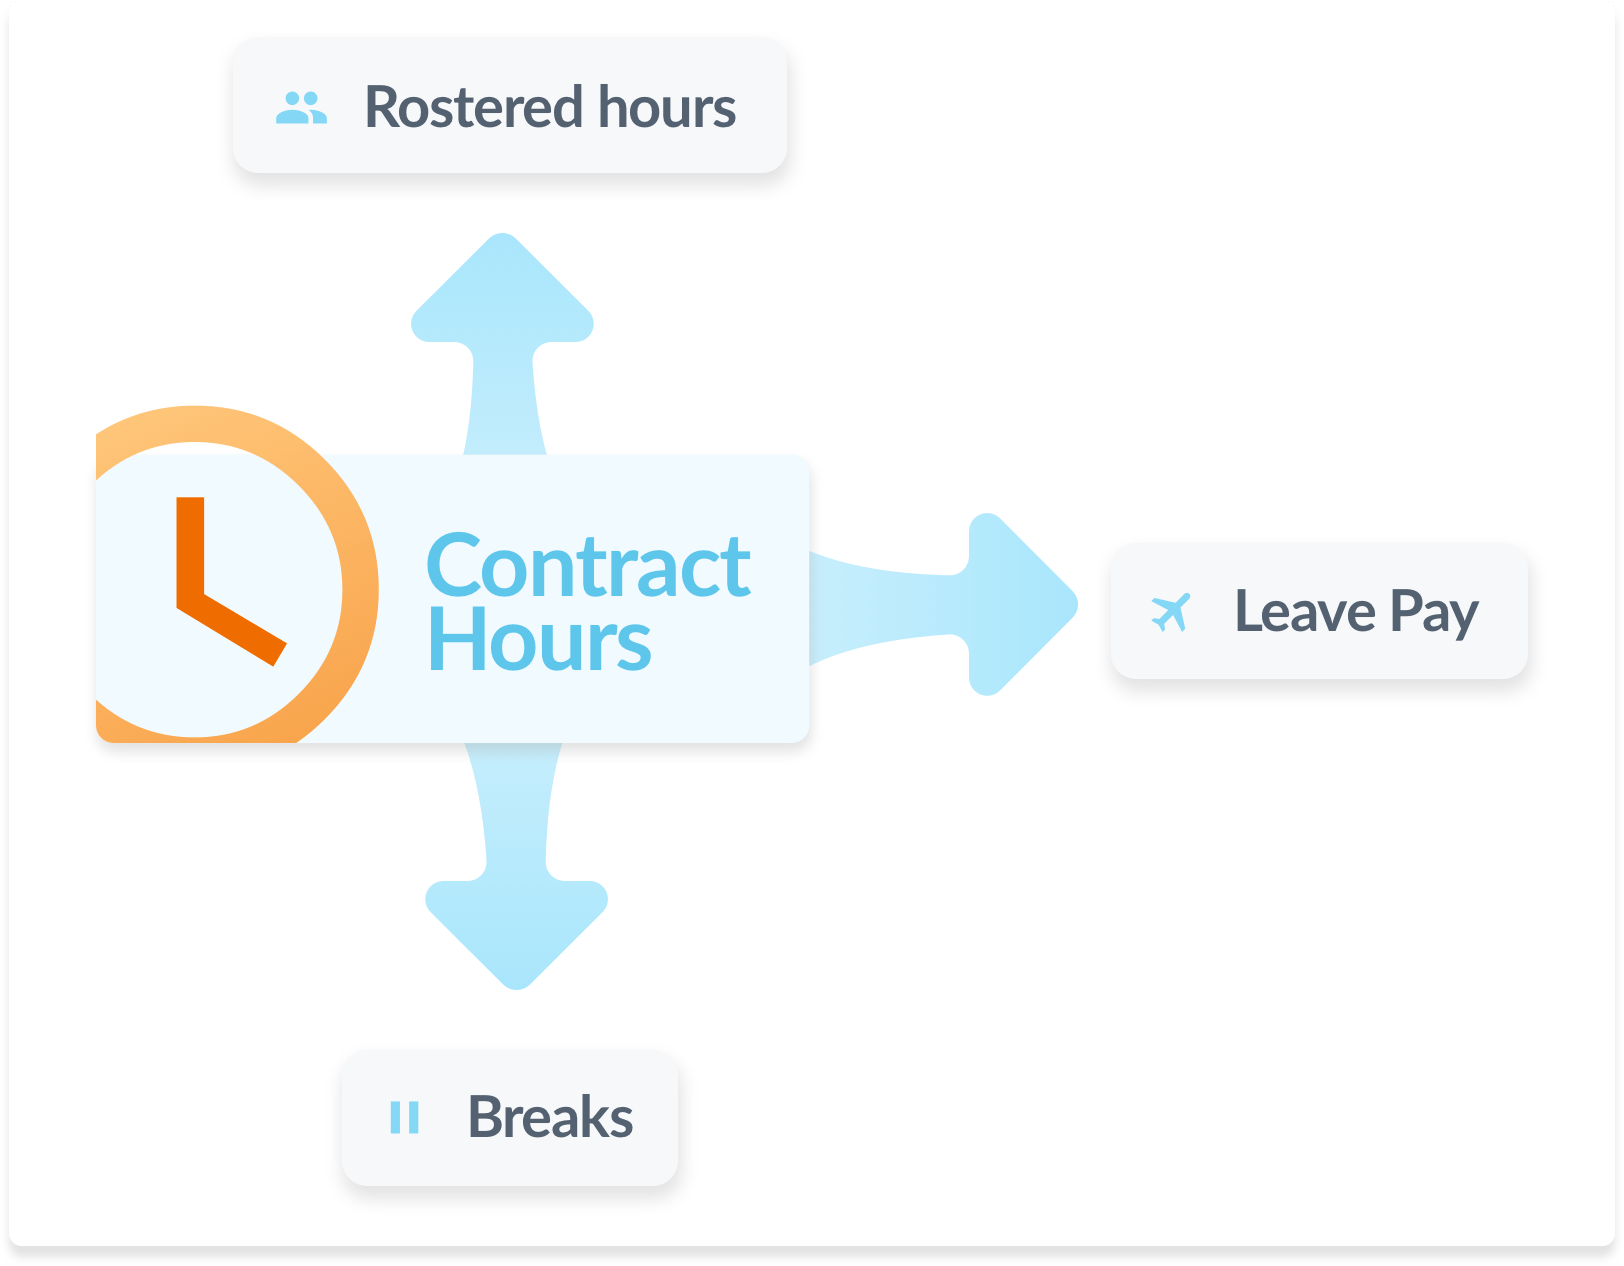 Contract hours influence rosters, leave pay, and breaks